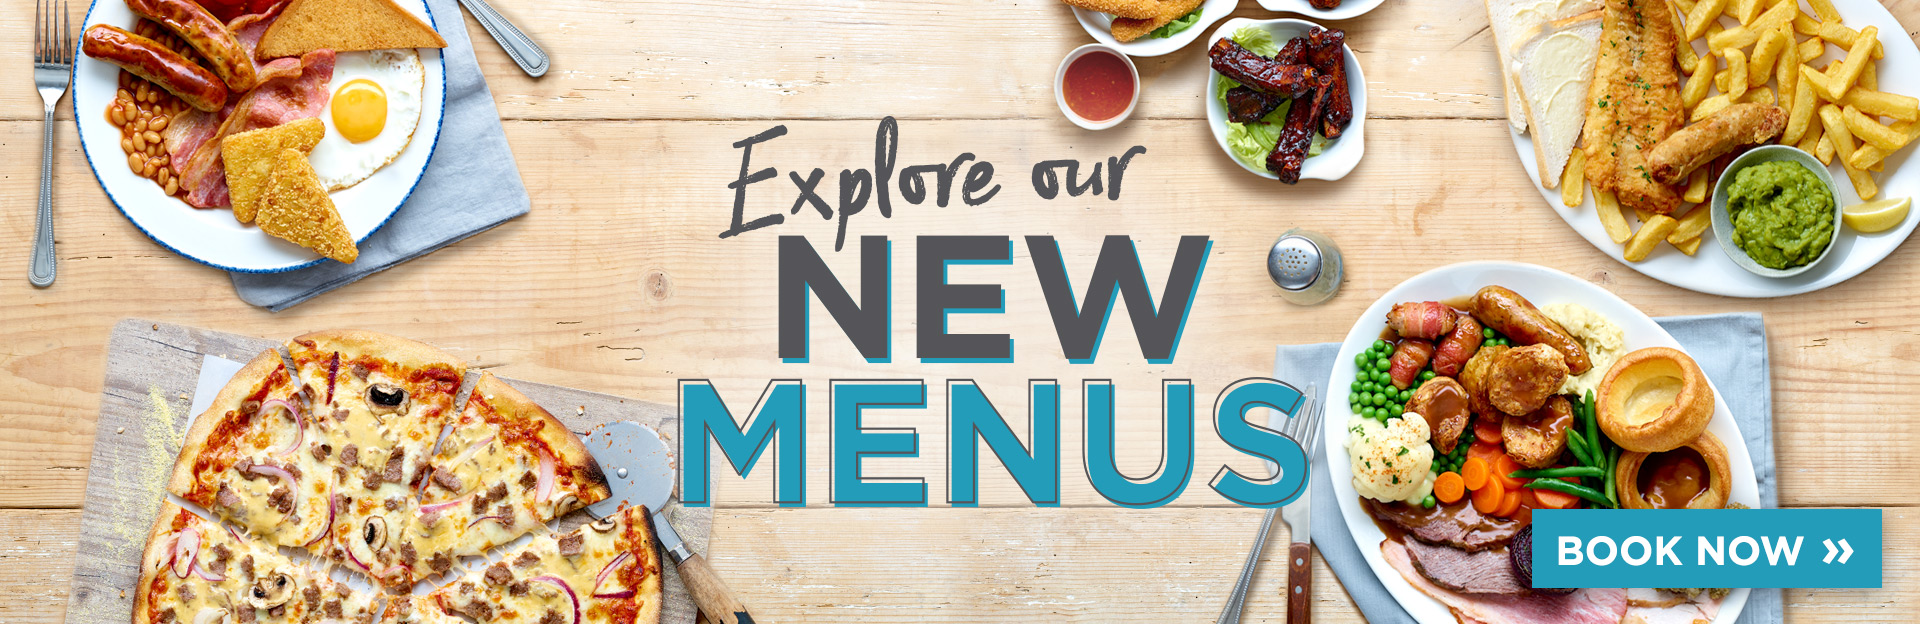 New menu at The Town House